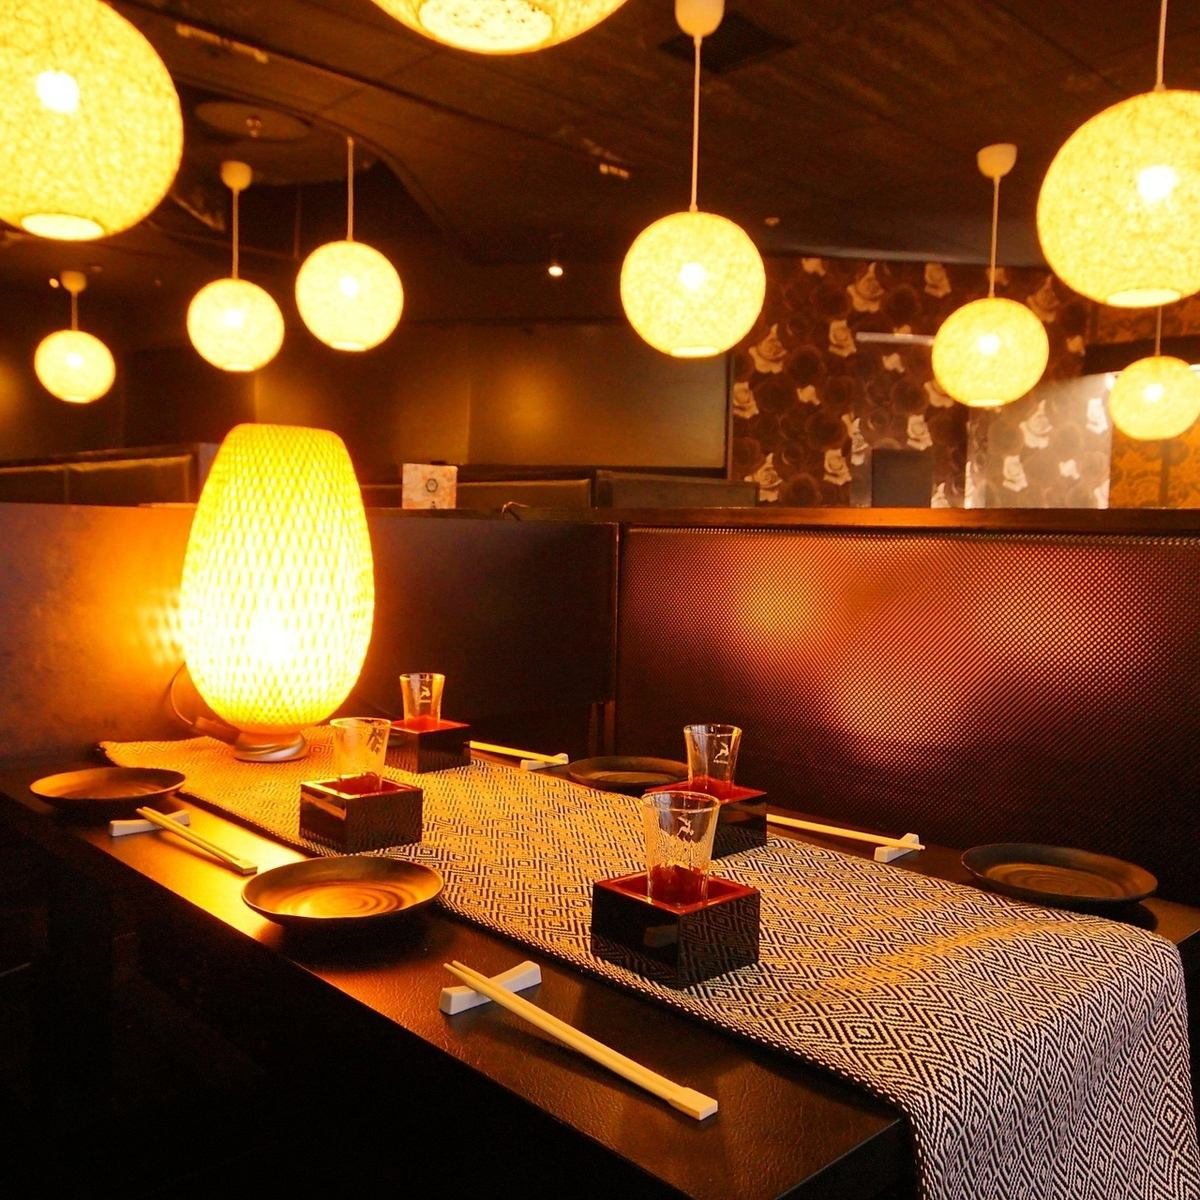 In a warm atmosphere ♪ In the evening you can also see a pair of sheets that can see the night view ◎